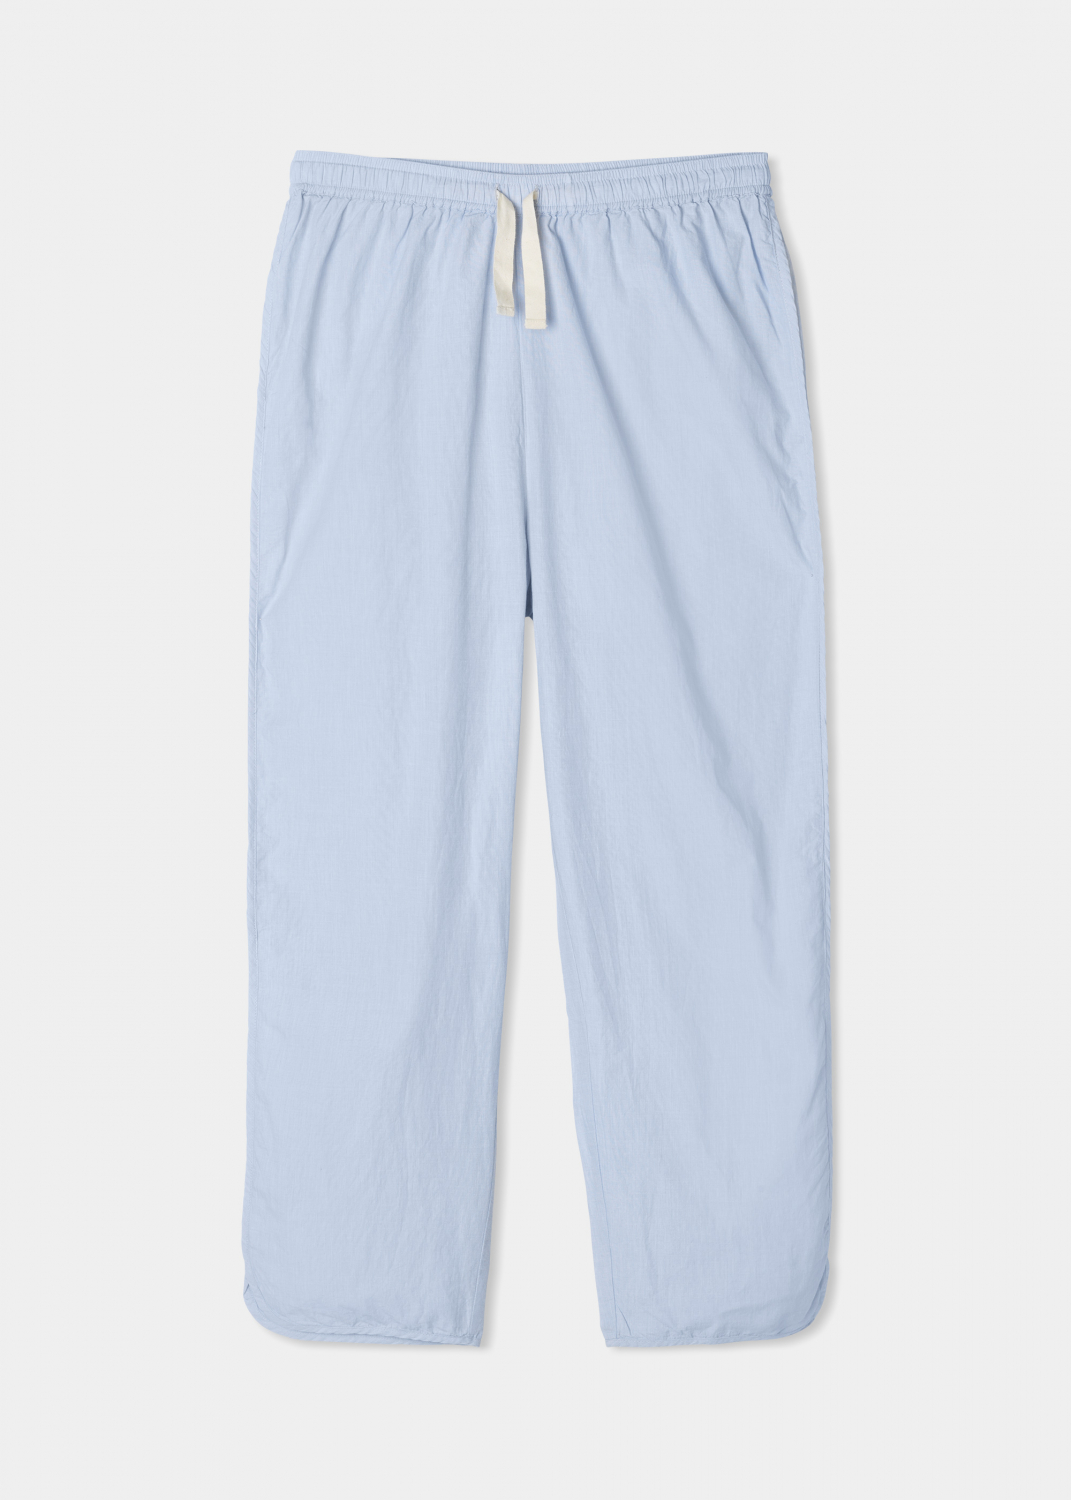 Lounge Wear - Pyjamas Poplin Thumbnail